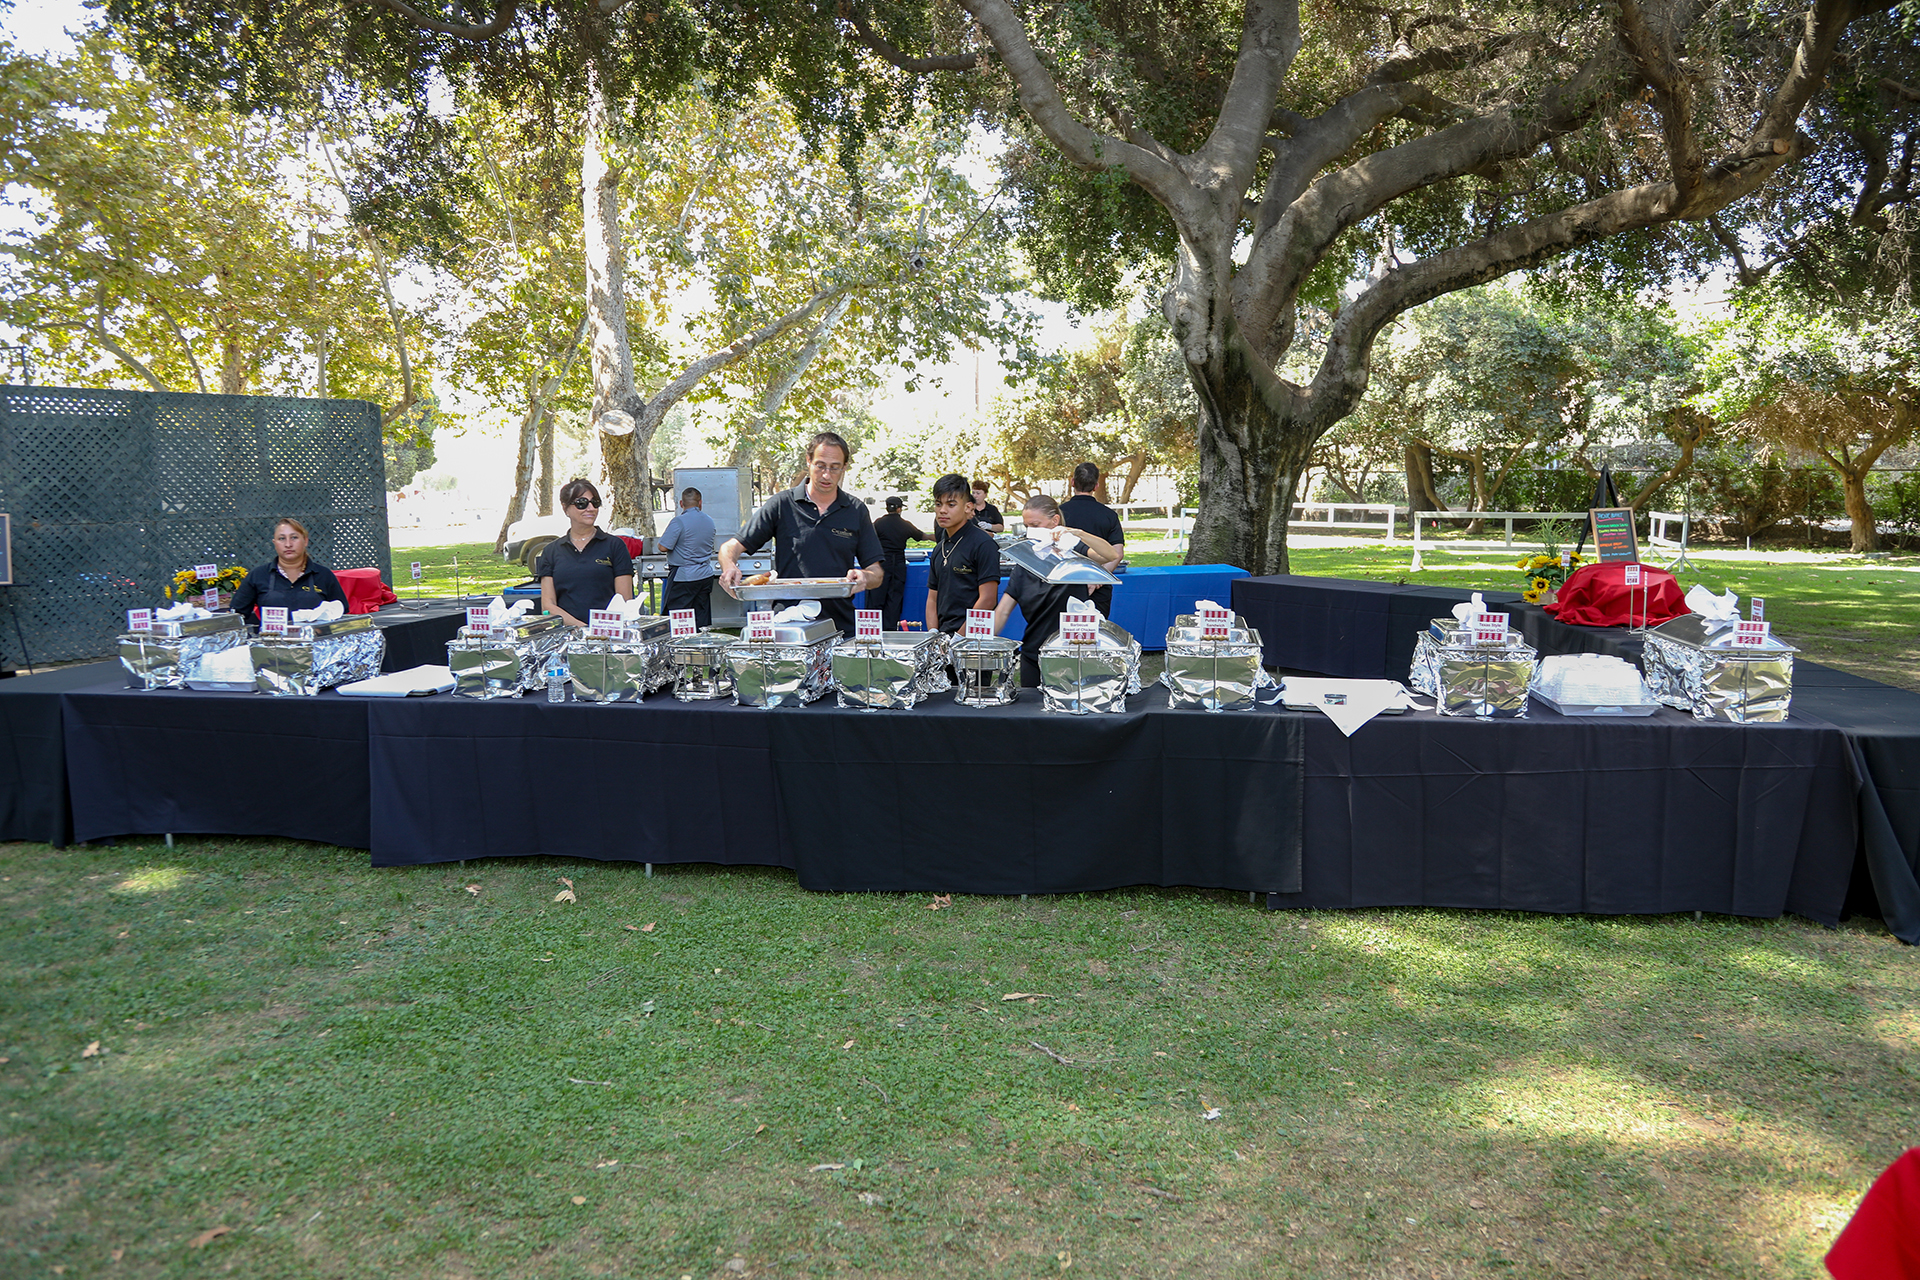 Buffet line by 'Calamigos' Catering